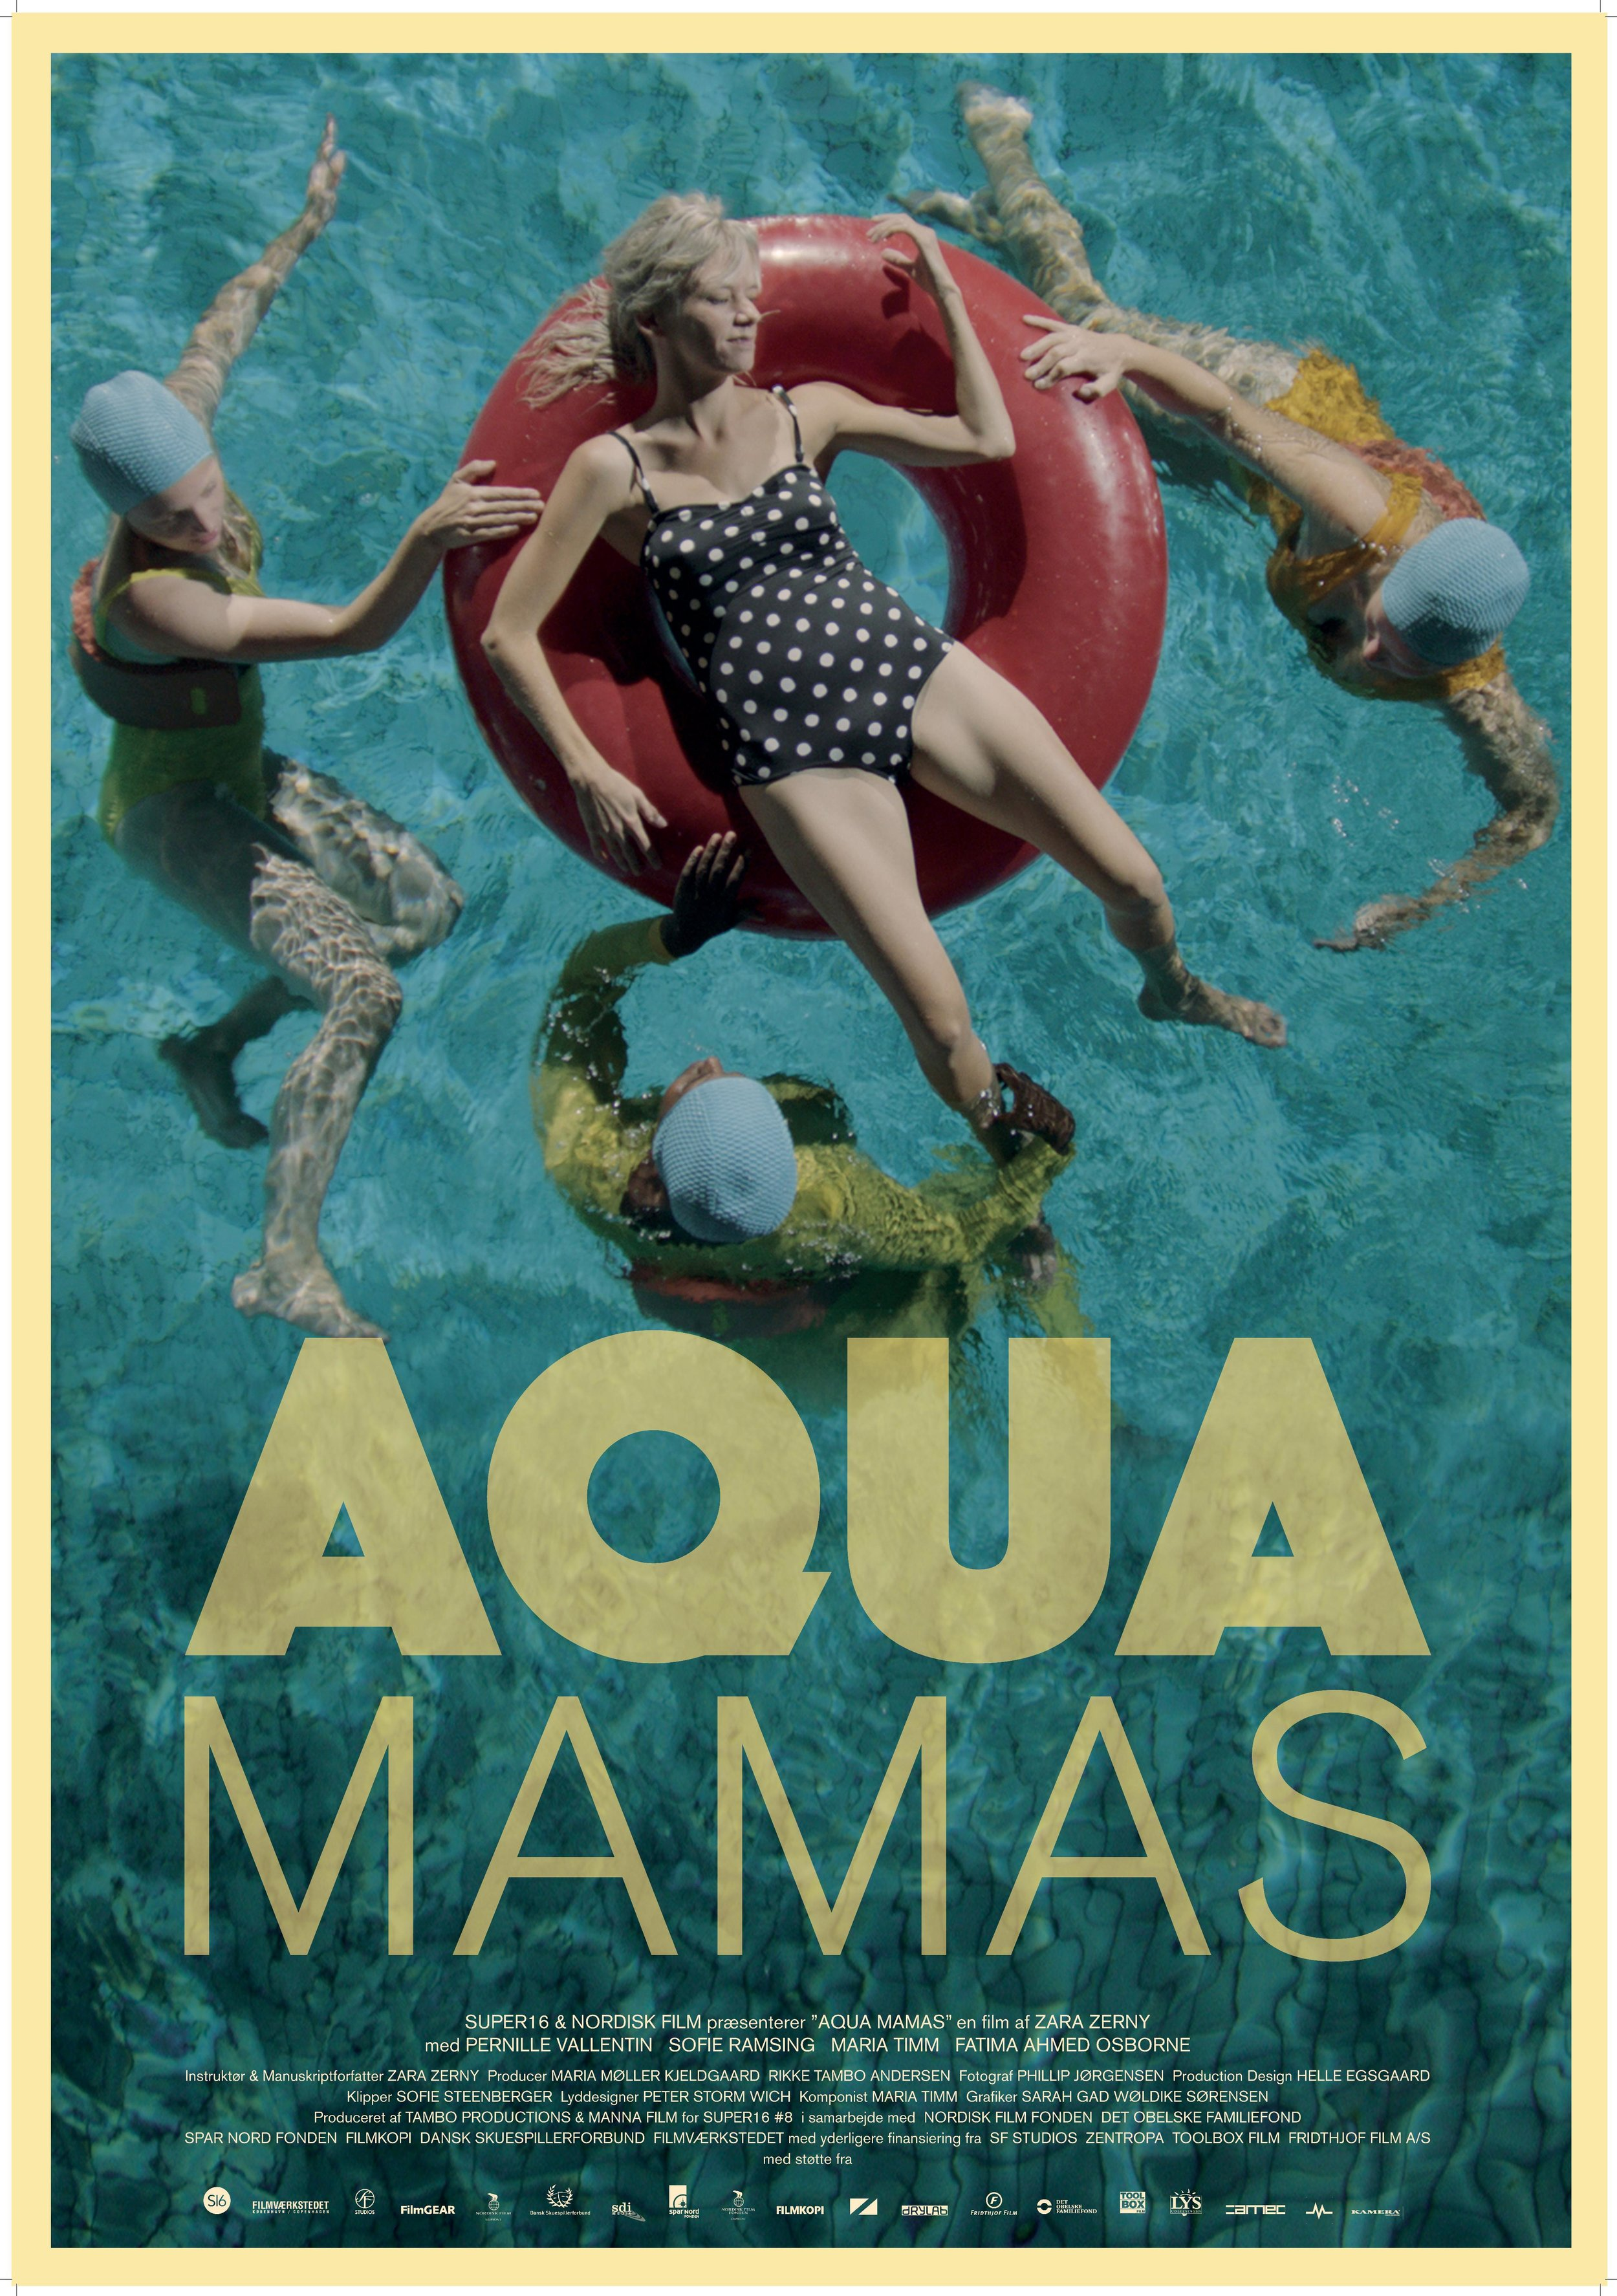 Aqua Mamas    Pernille is pregnant and filled with joyful expectations to her new life as a mother. But when her son arrives her world is turned upside-down...  Read More